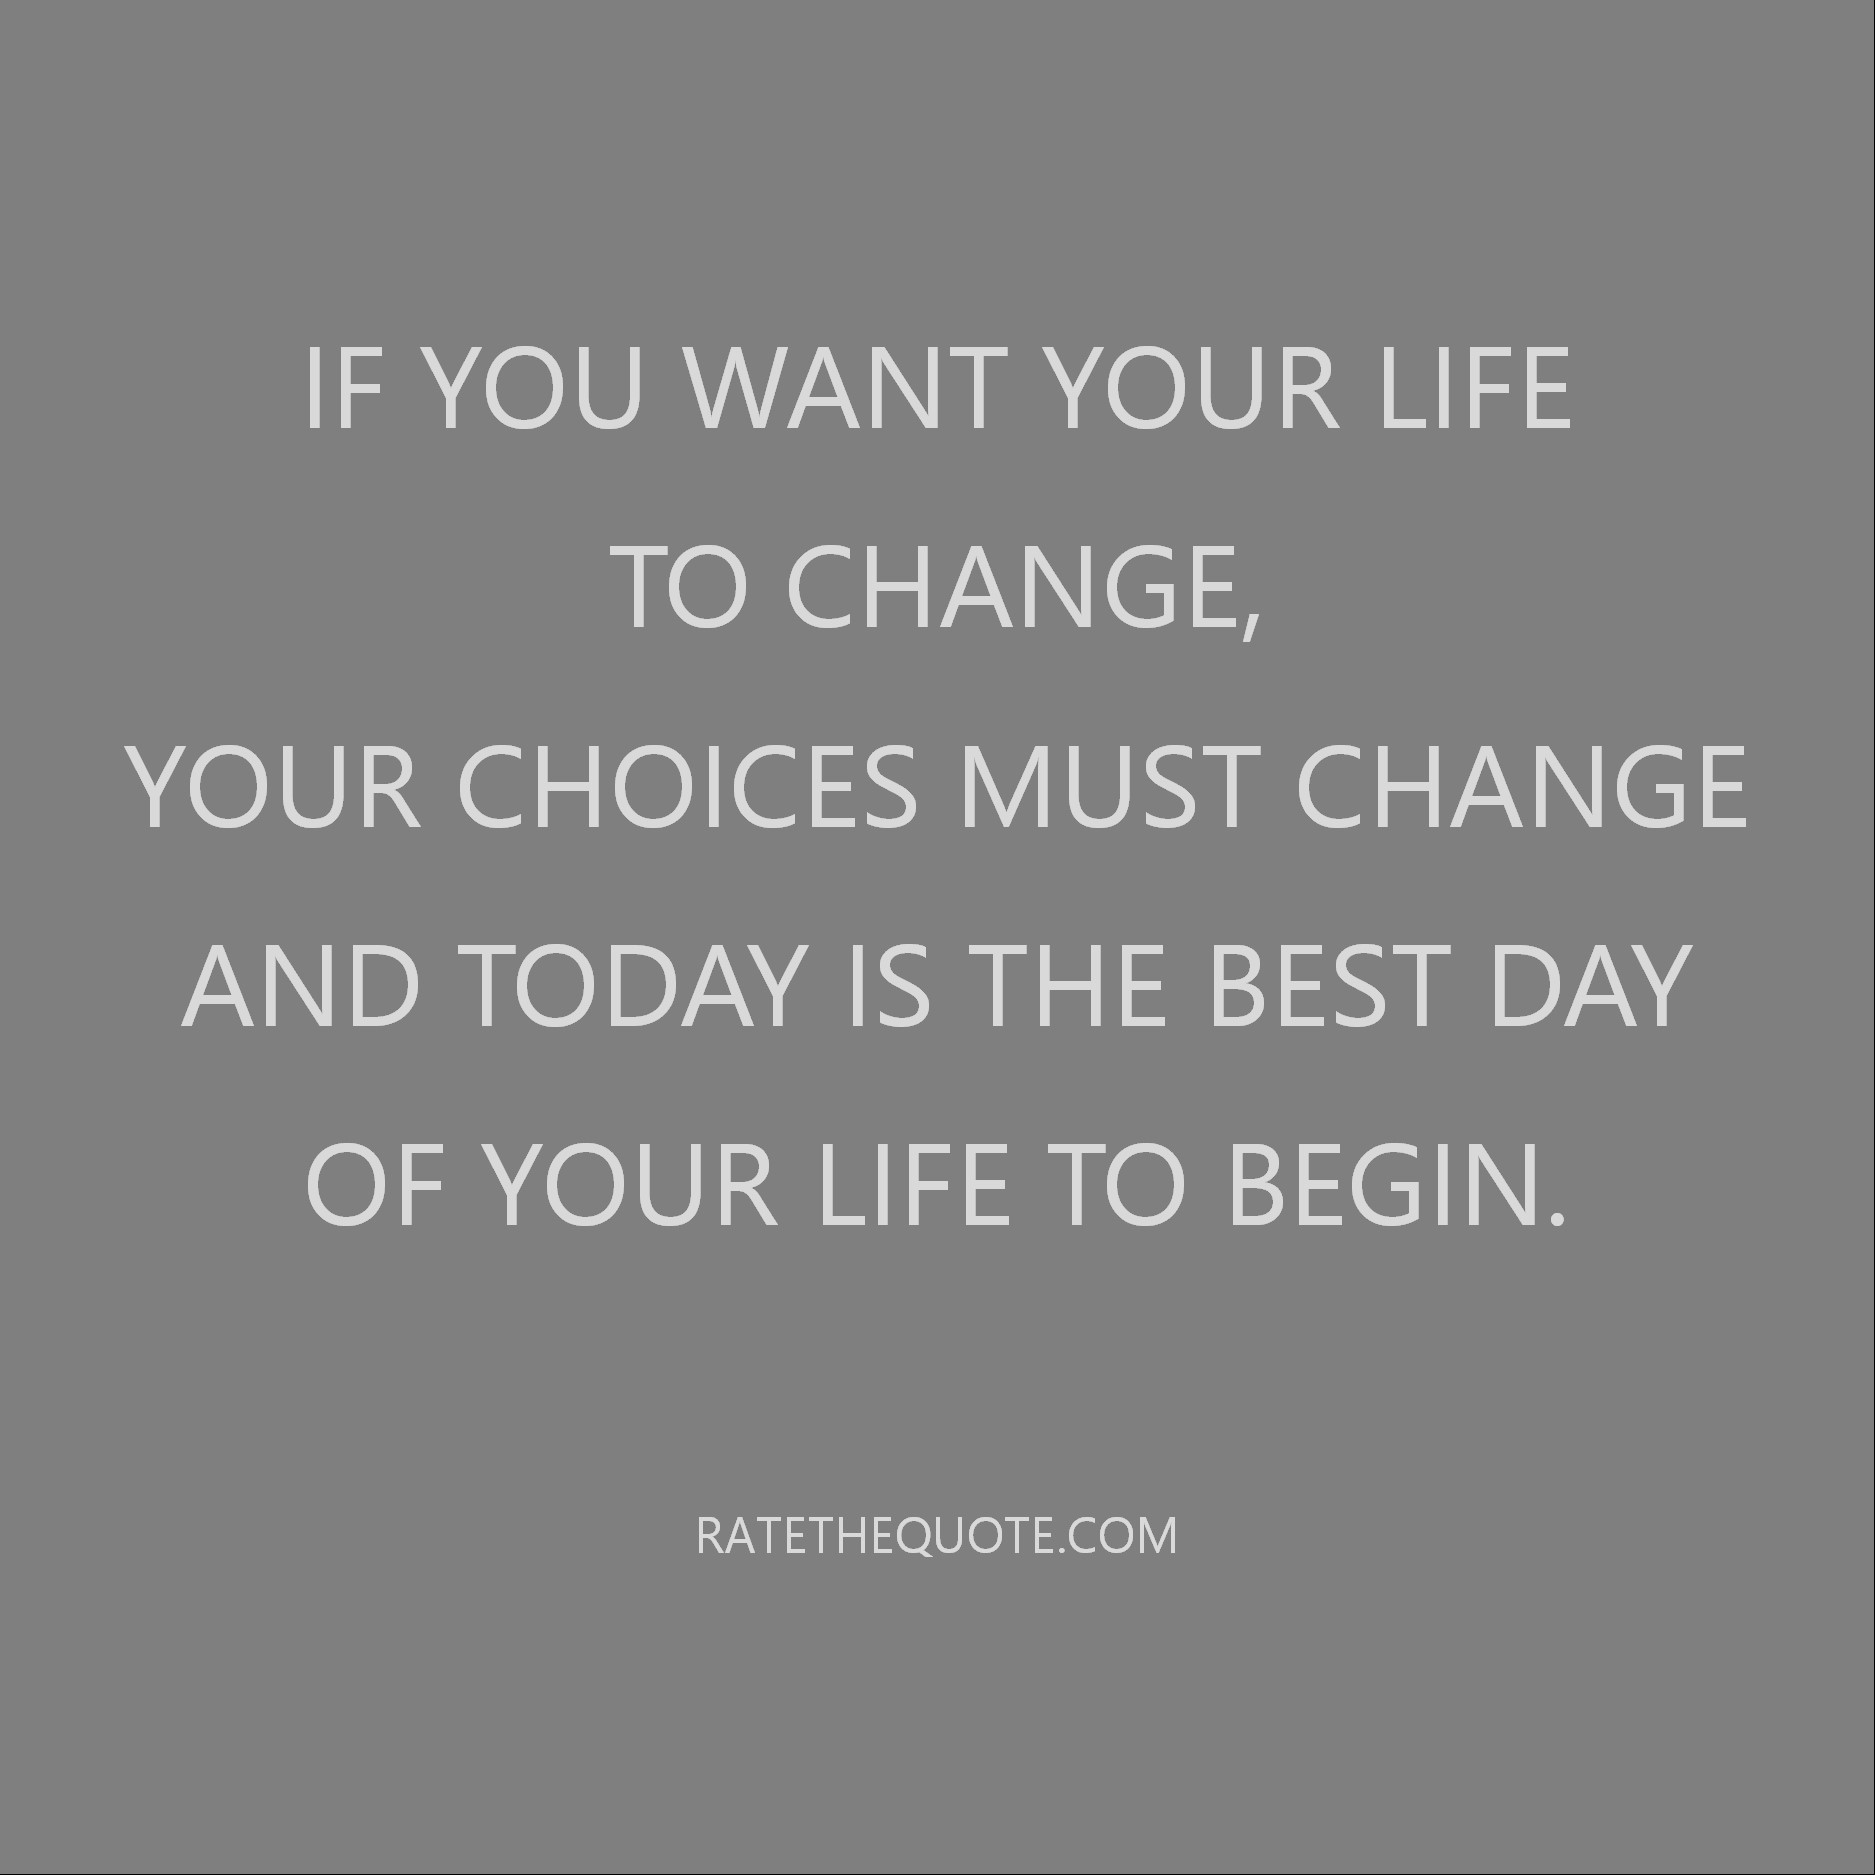 Life Quote Change Motivation If you want your life to change, your choices must change and today is the best day of your life to begin.